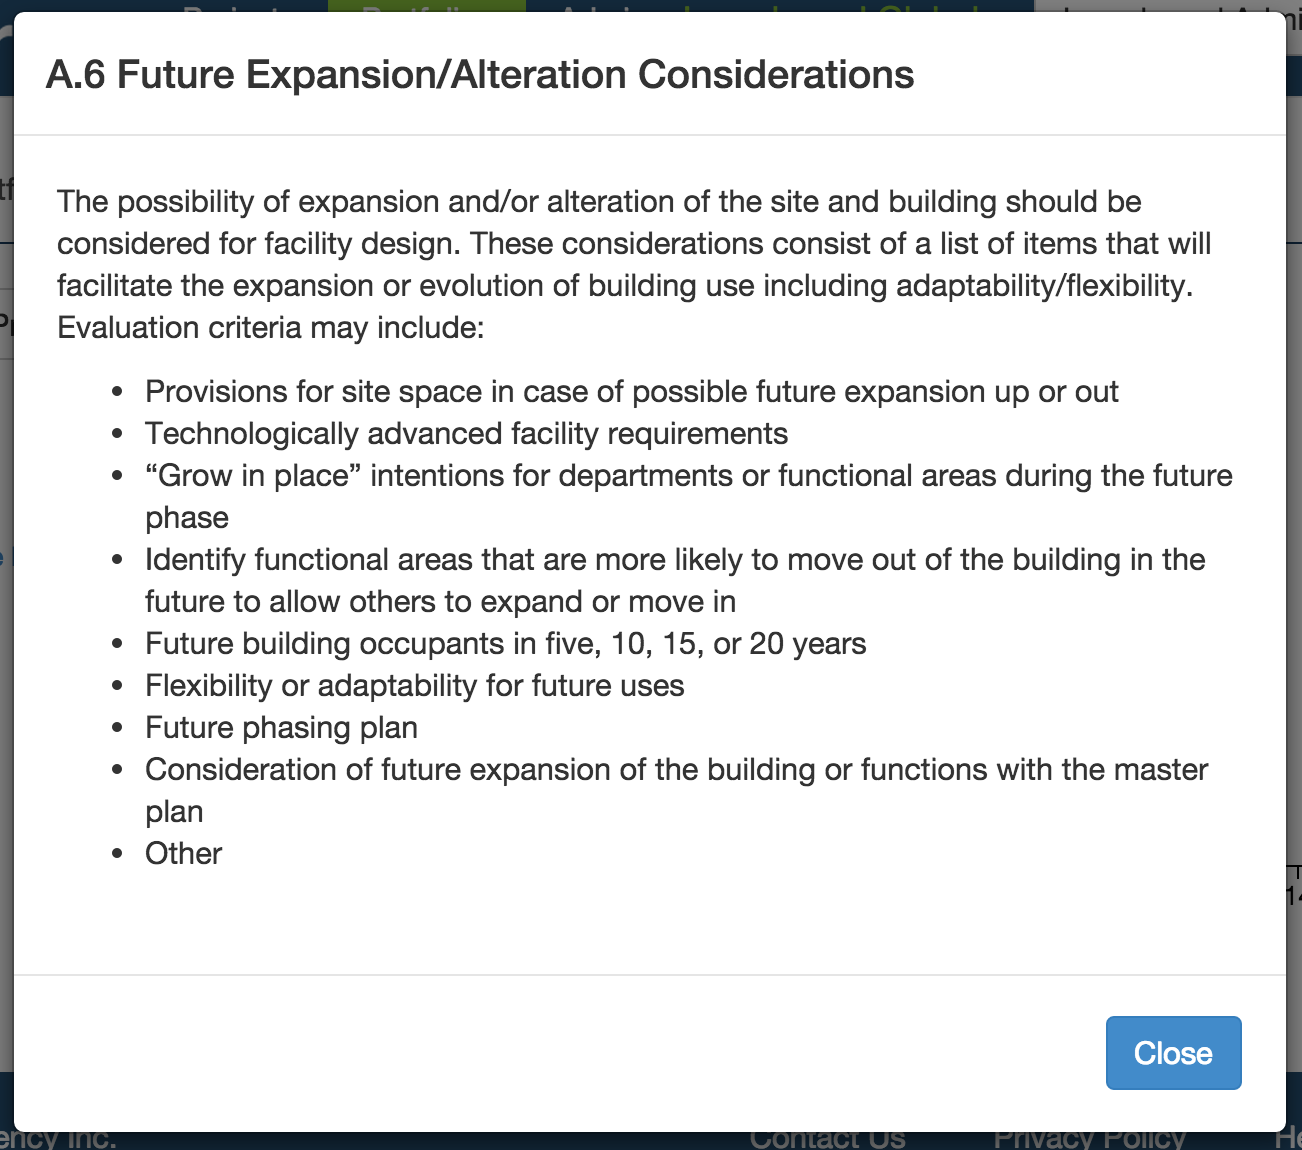 A.6 Future expansion/alternation considerations popup element description on Carve.